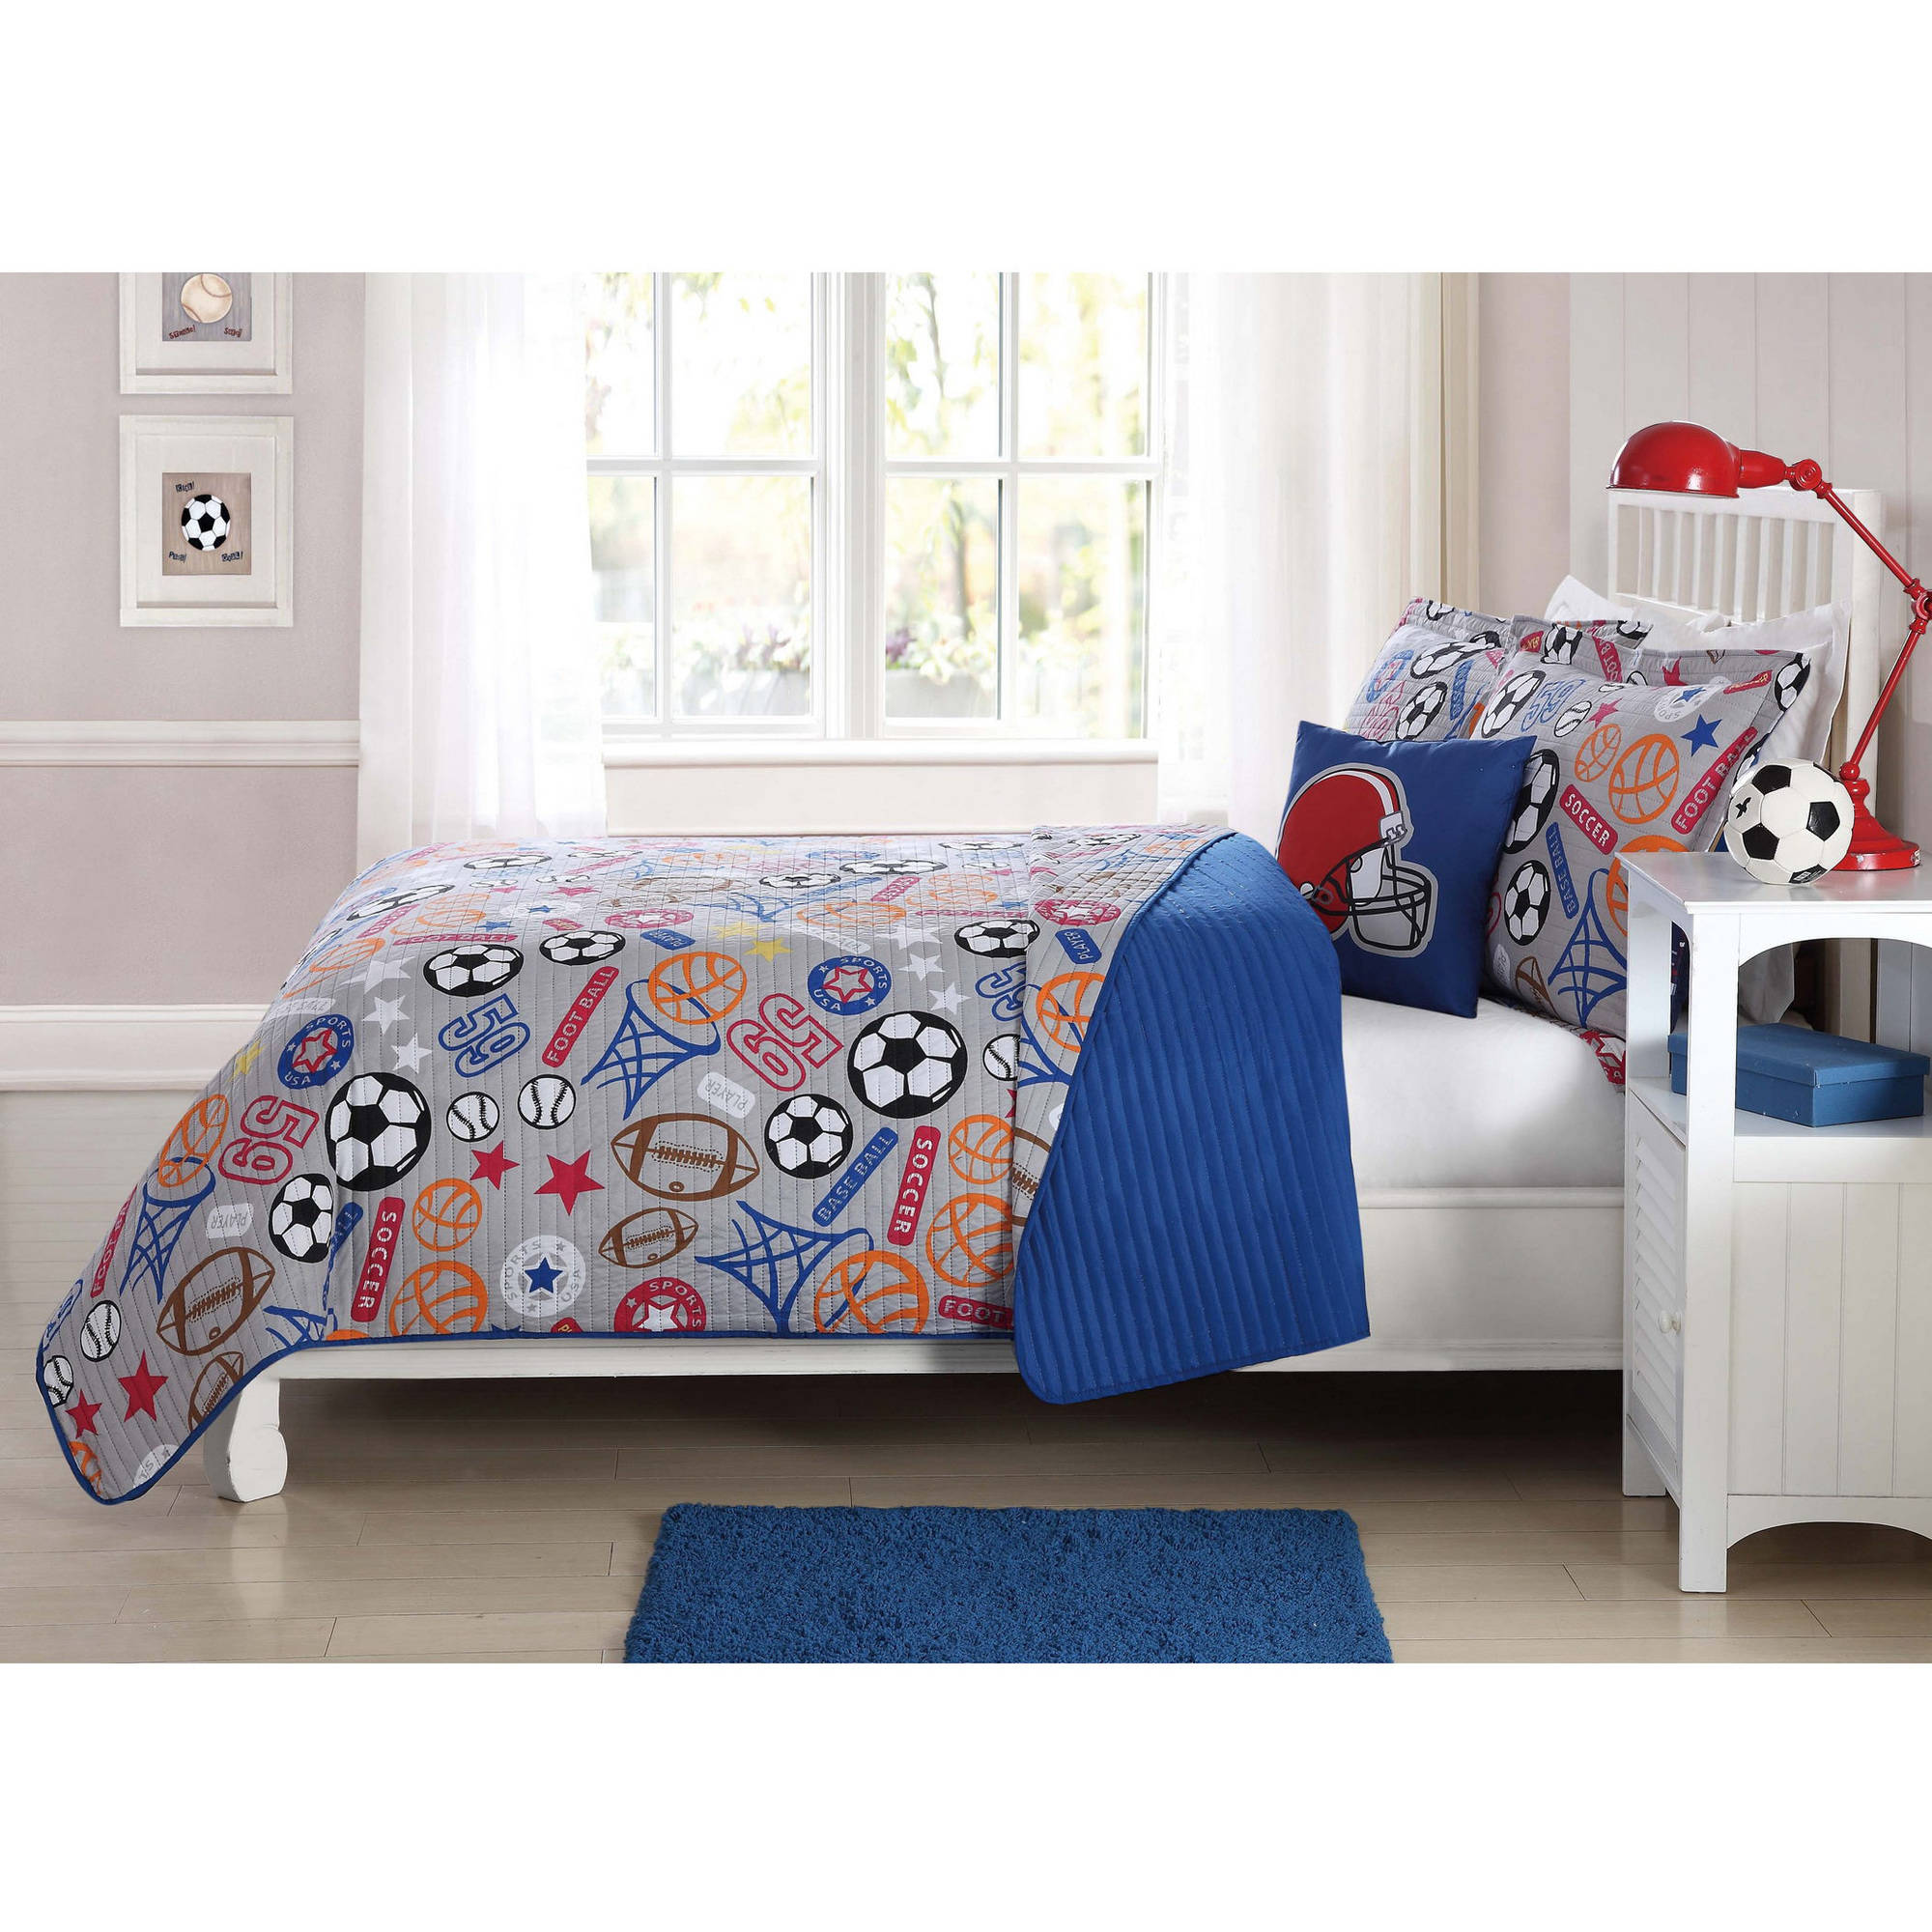 Kids Quilt Set with BONUS Decorative Pillow